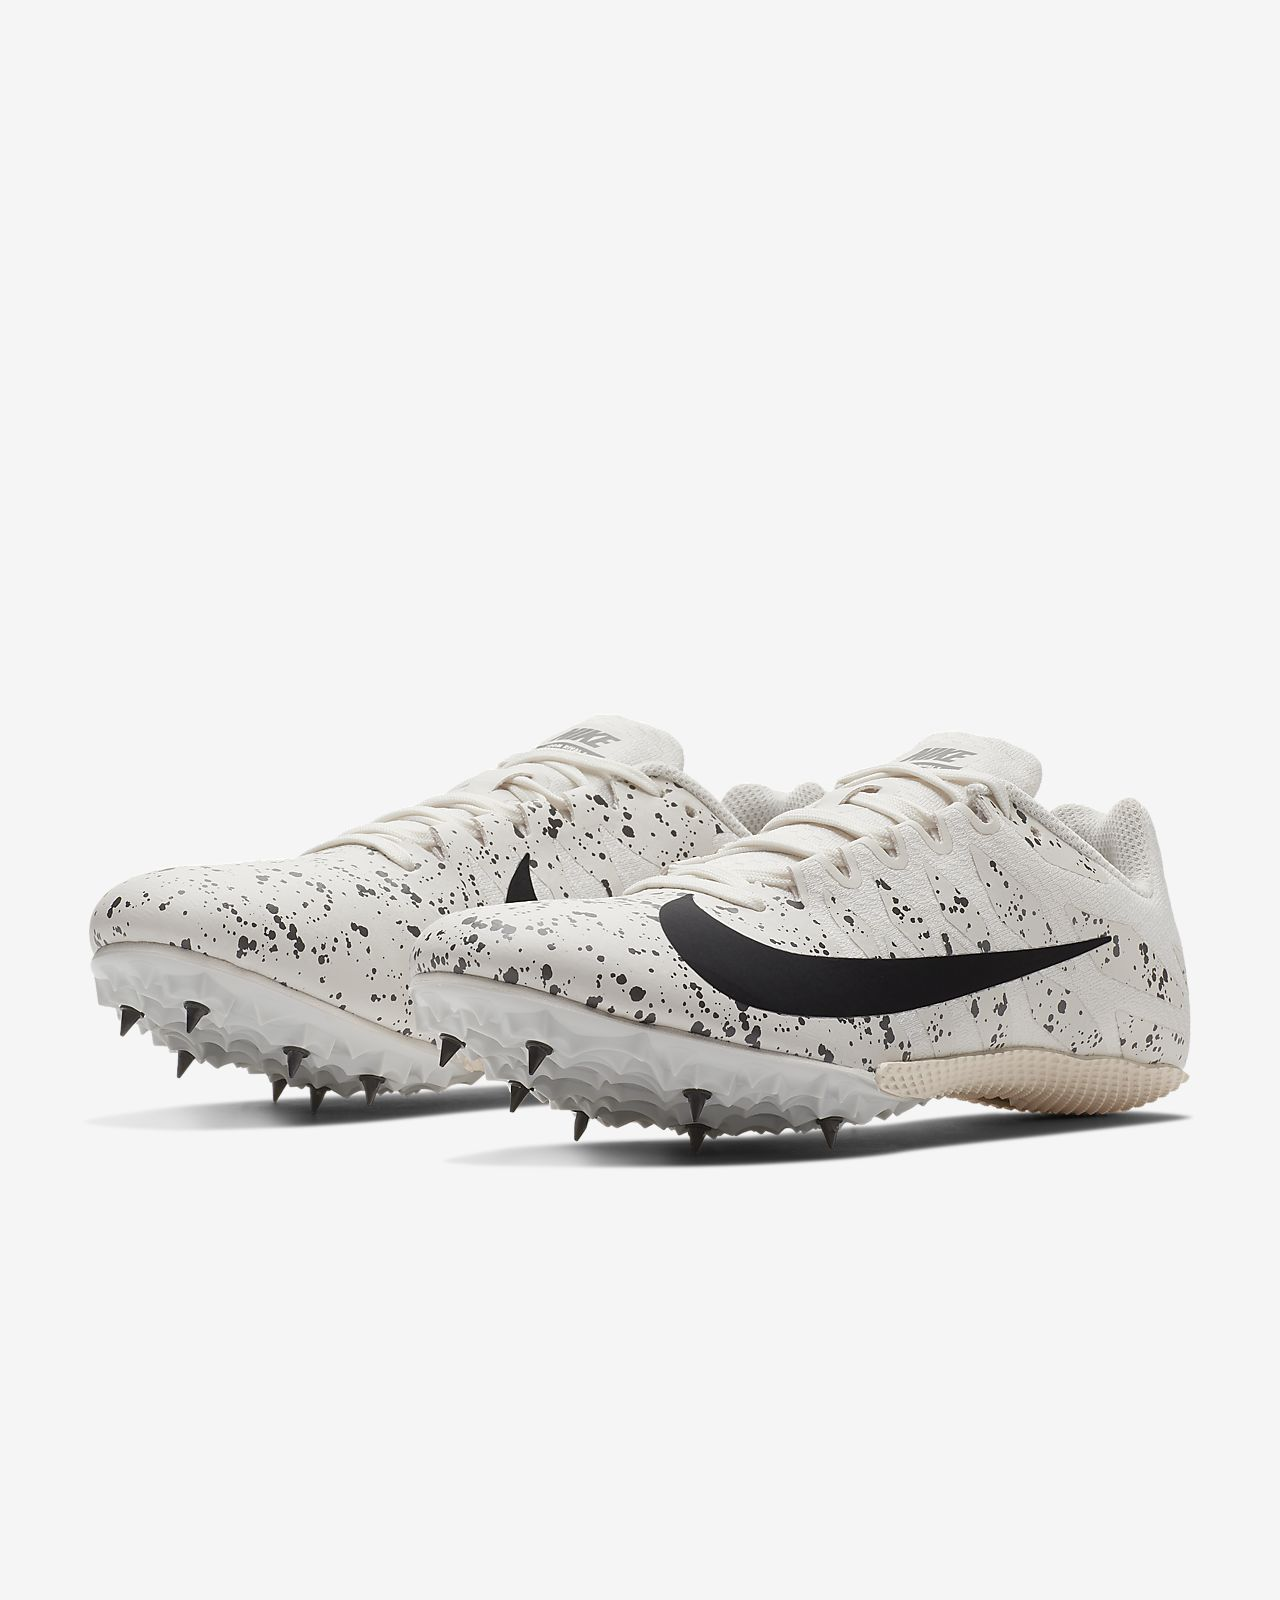 info for 83d52 23911 ... Nike Zoom Rival S 9 Unisex Track Spike